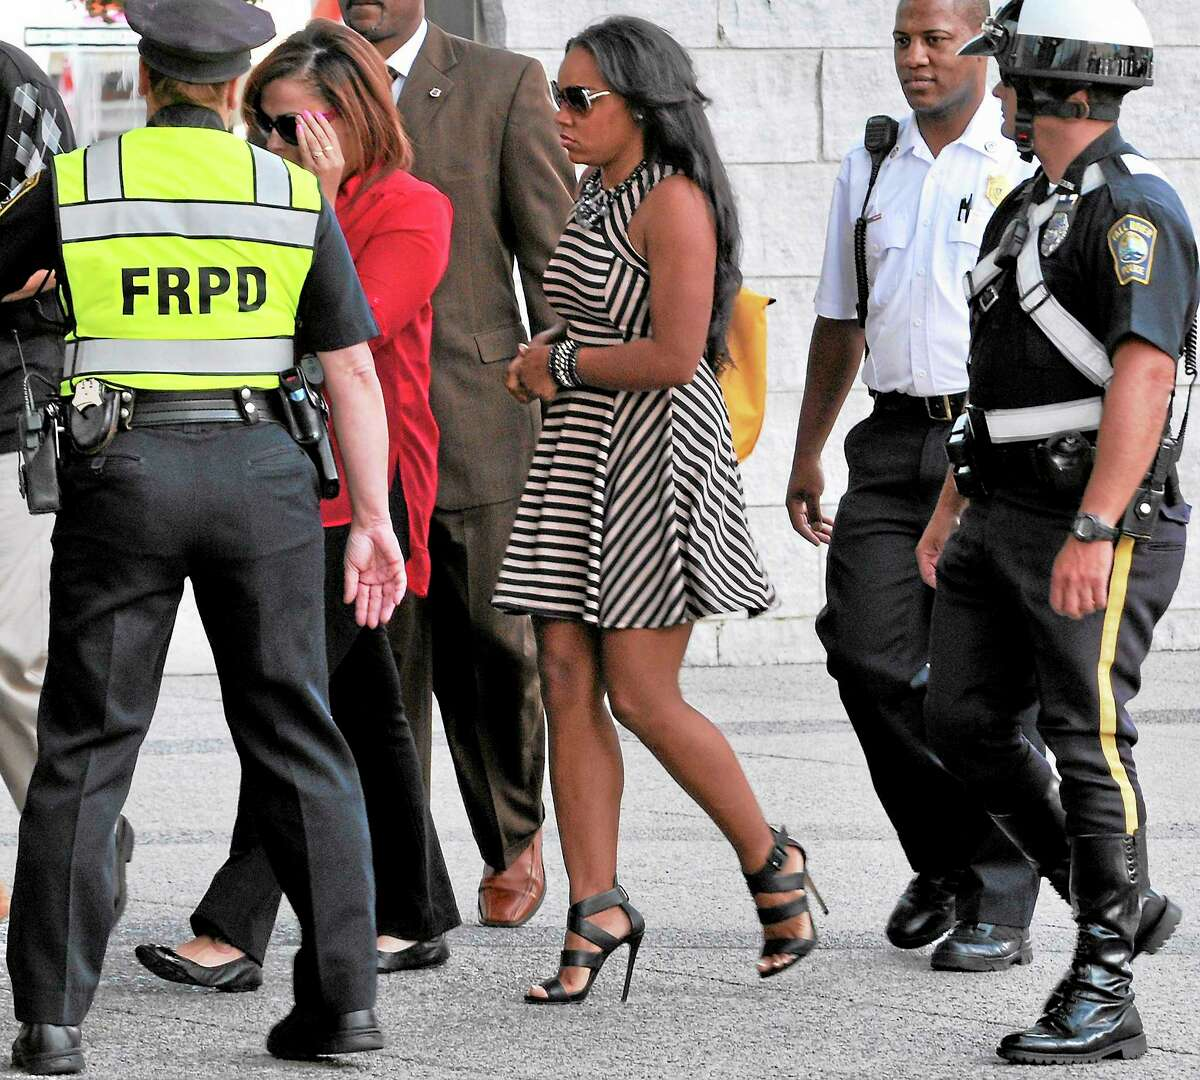 Shayanna Jenkins, fiancee of former New England Patriots player Aaron Hernandez, arrives at superior court on Sept. 6.